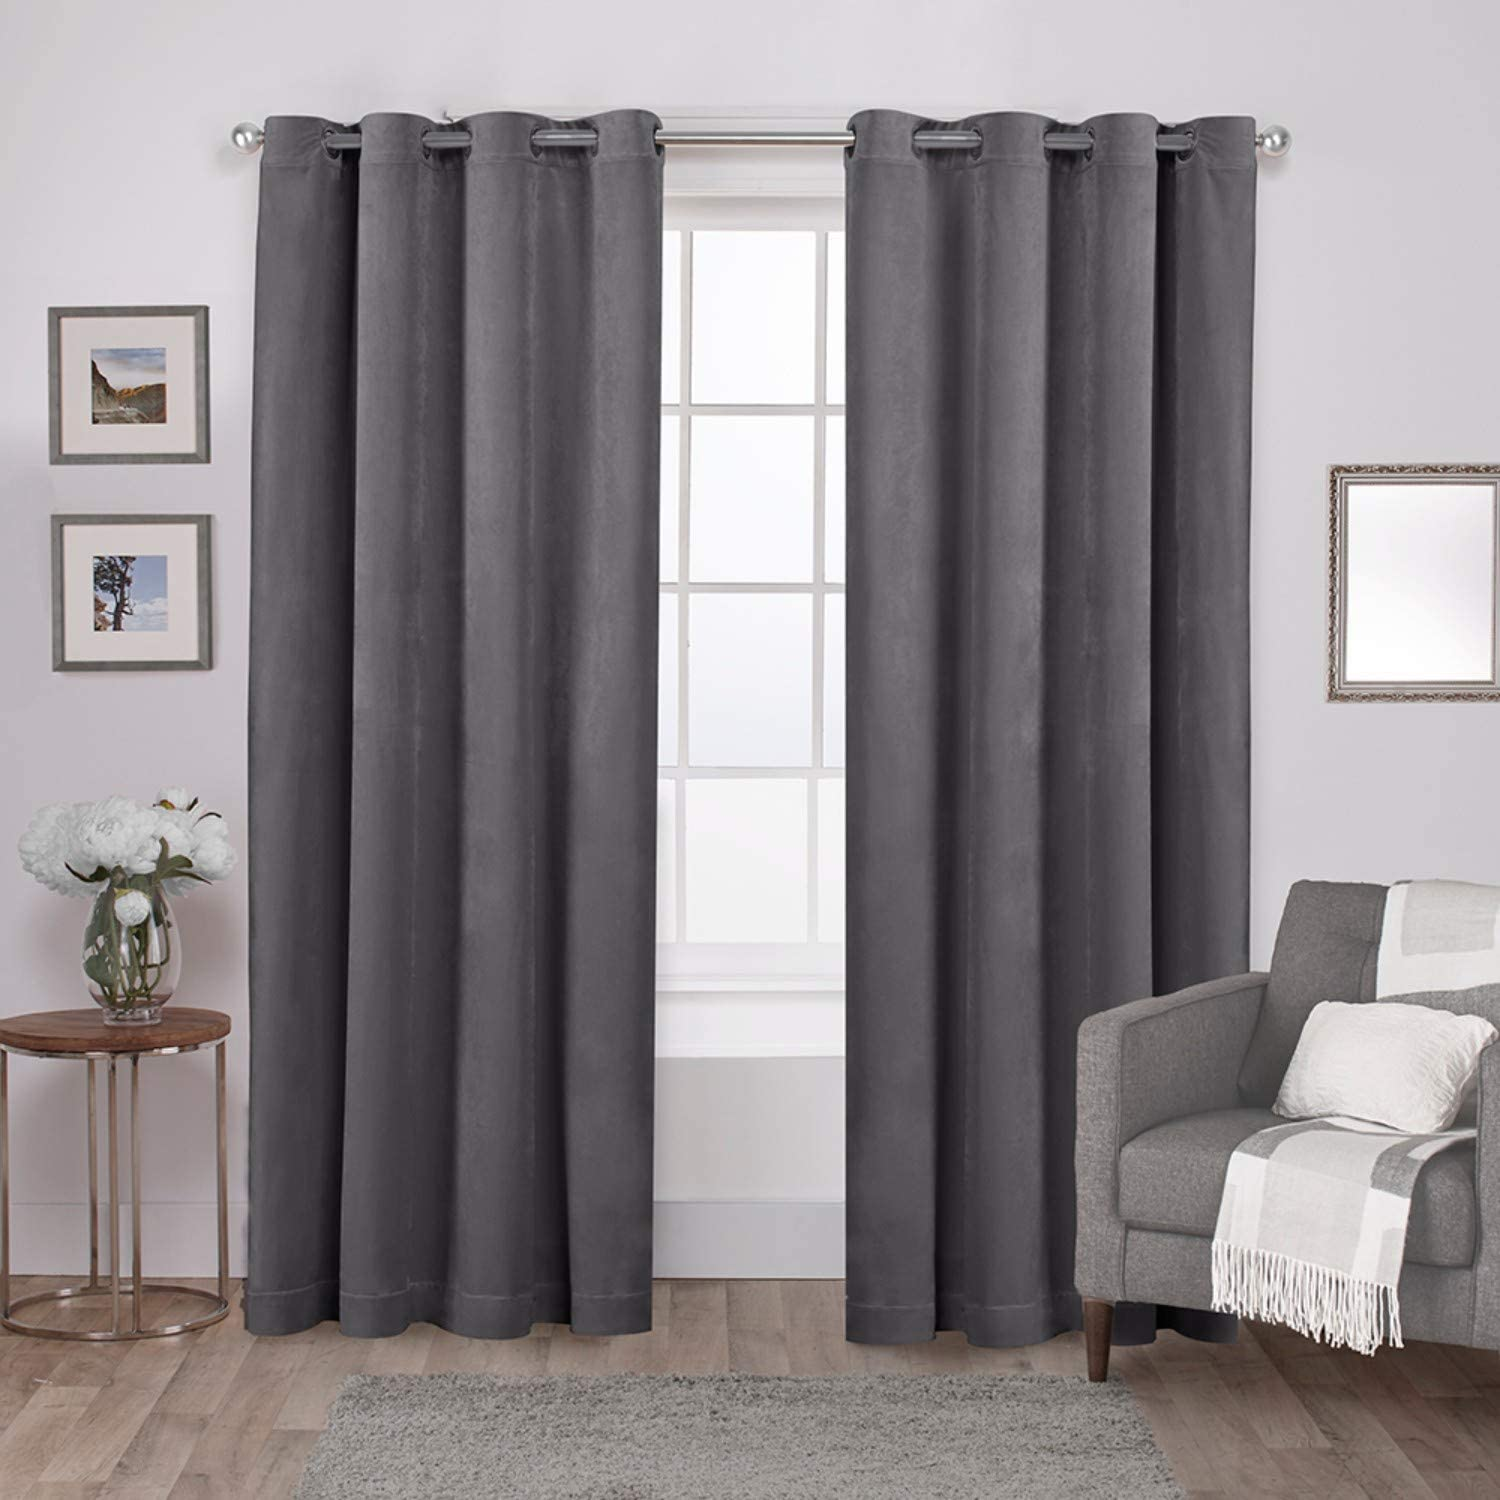 Exclusive Home Curtains Velvet Heavyweight Window Curtain Panel Pair with Grommet Top, 54x84, Soft Grey, 2 Piece